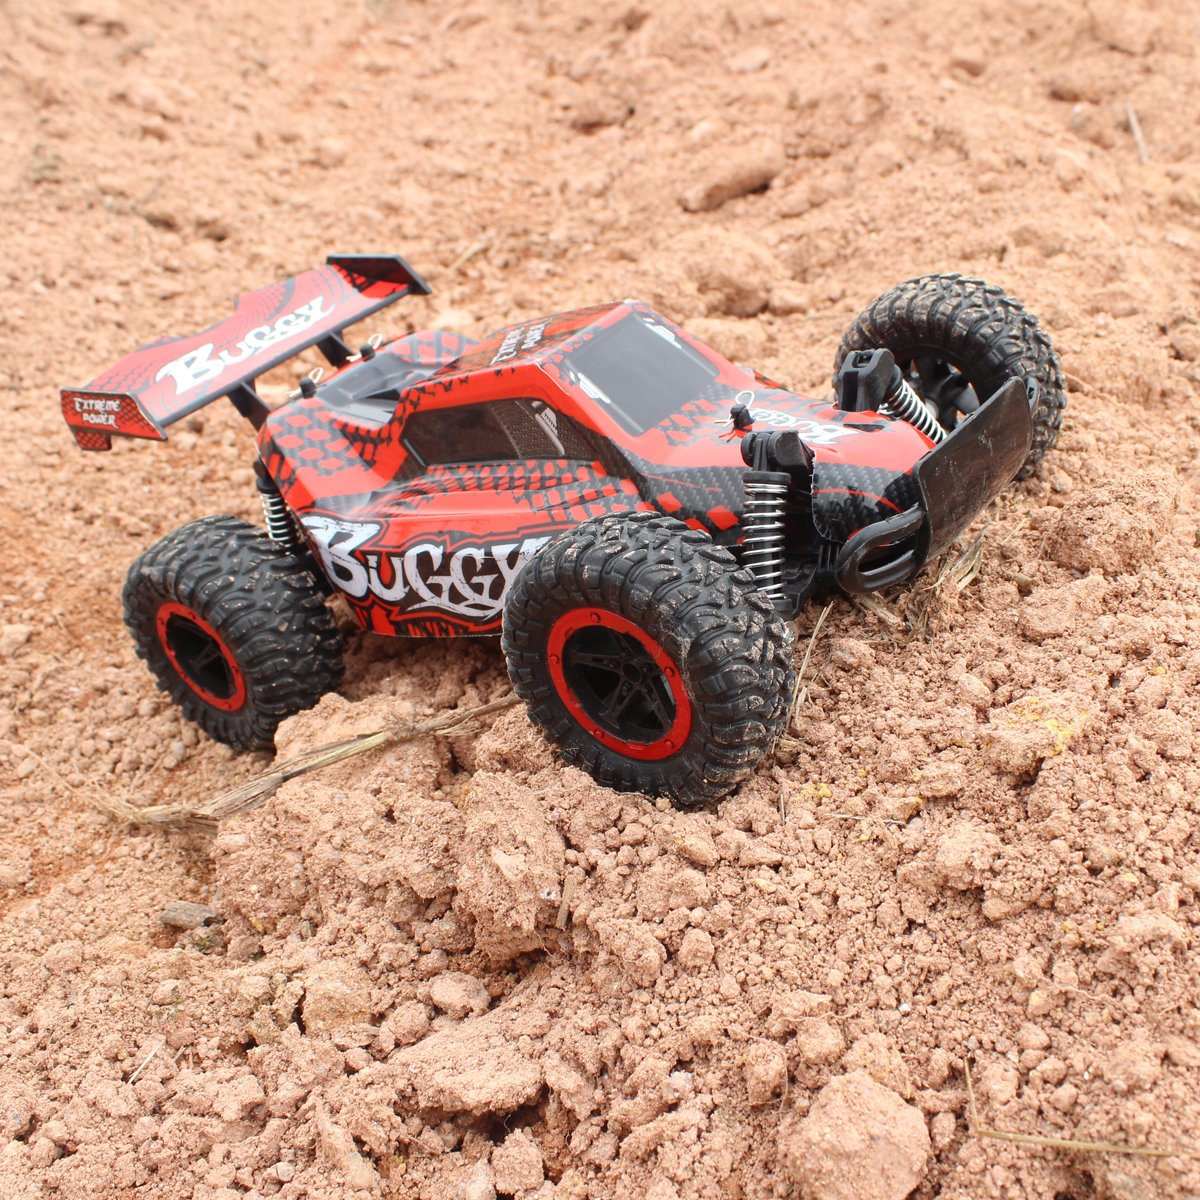 Hugine 1:16 2.4G RC Car Off Road Vehicle High Speed Racing Monster Truck 20km/h Buggy Independent Suspension Radio Control Cars Toys (Red)